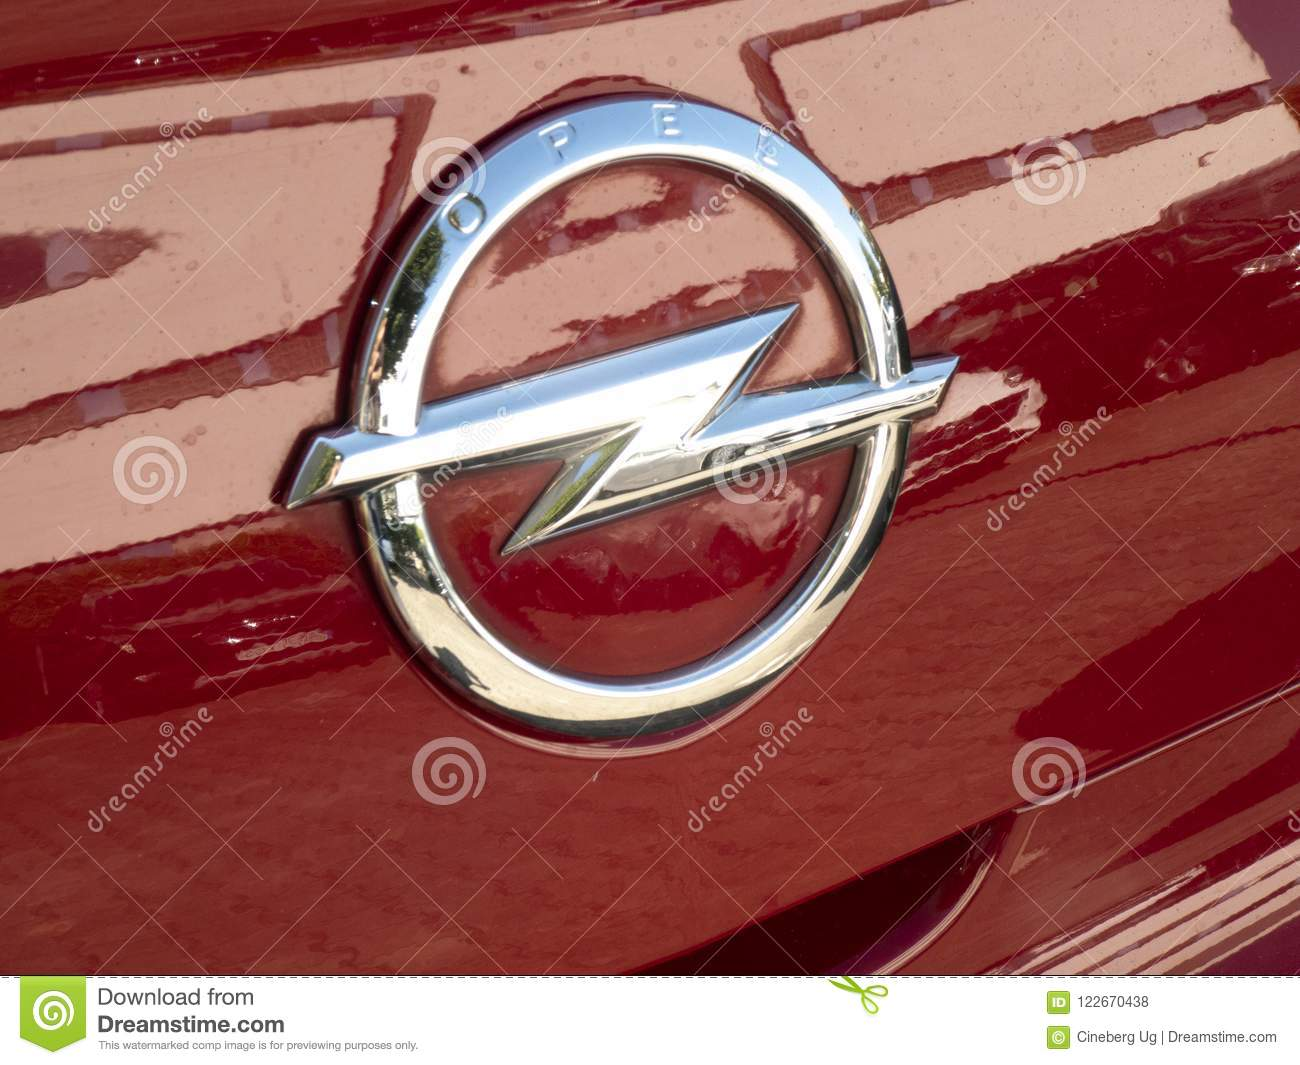 Opel Symbol On A Red Car Editorial Stock Photo Image Of Logo